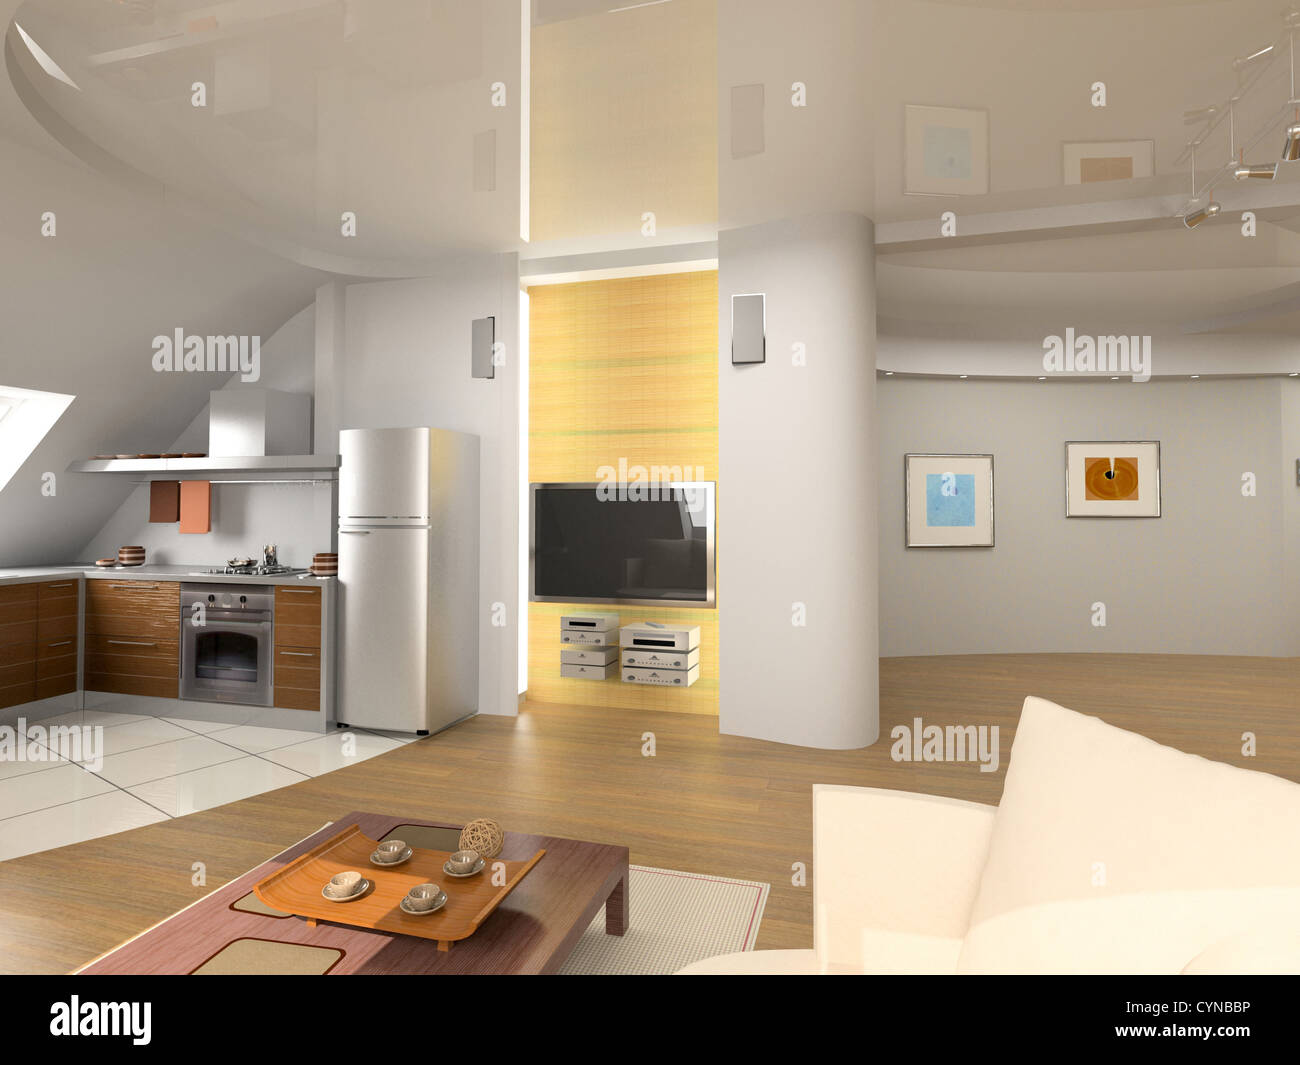 modern interior design (computer generated image 3D) - Stock Image